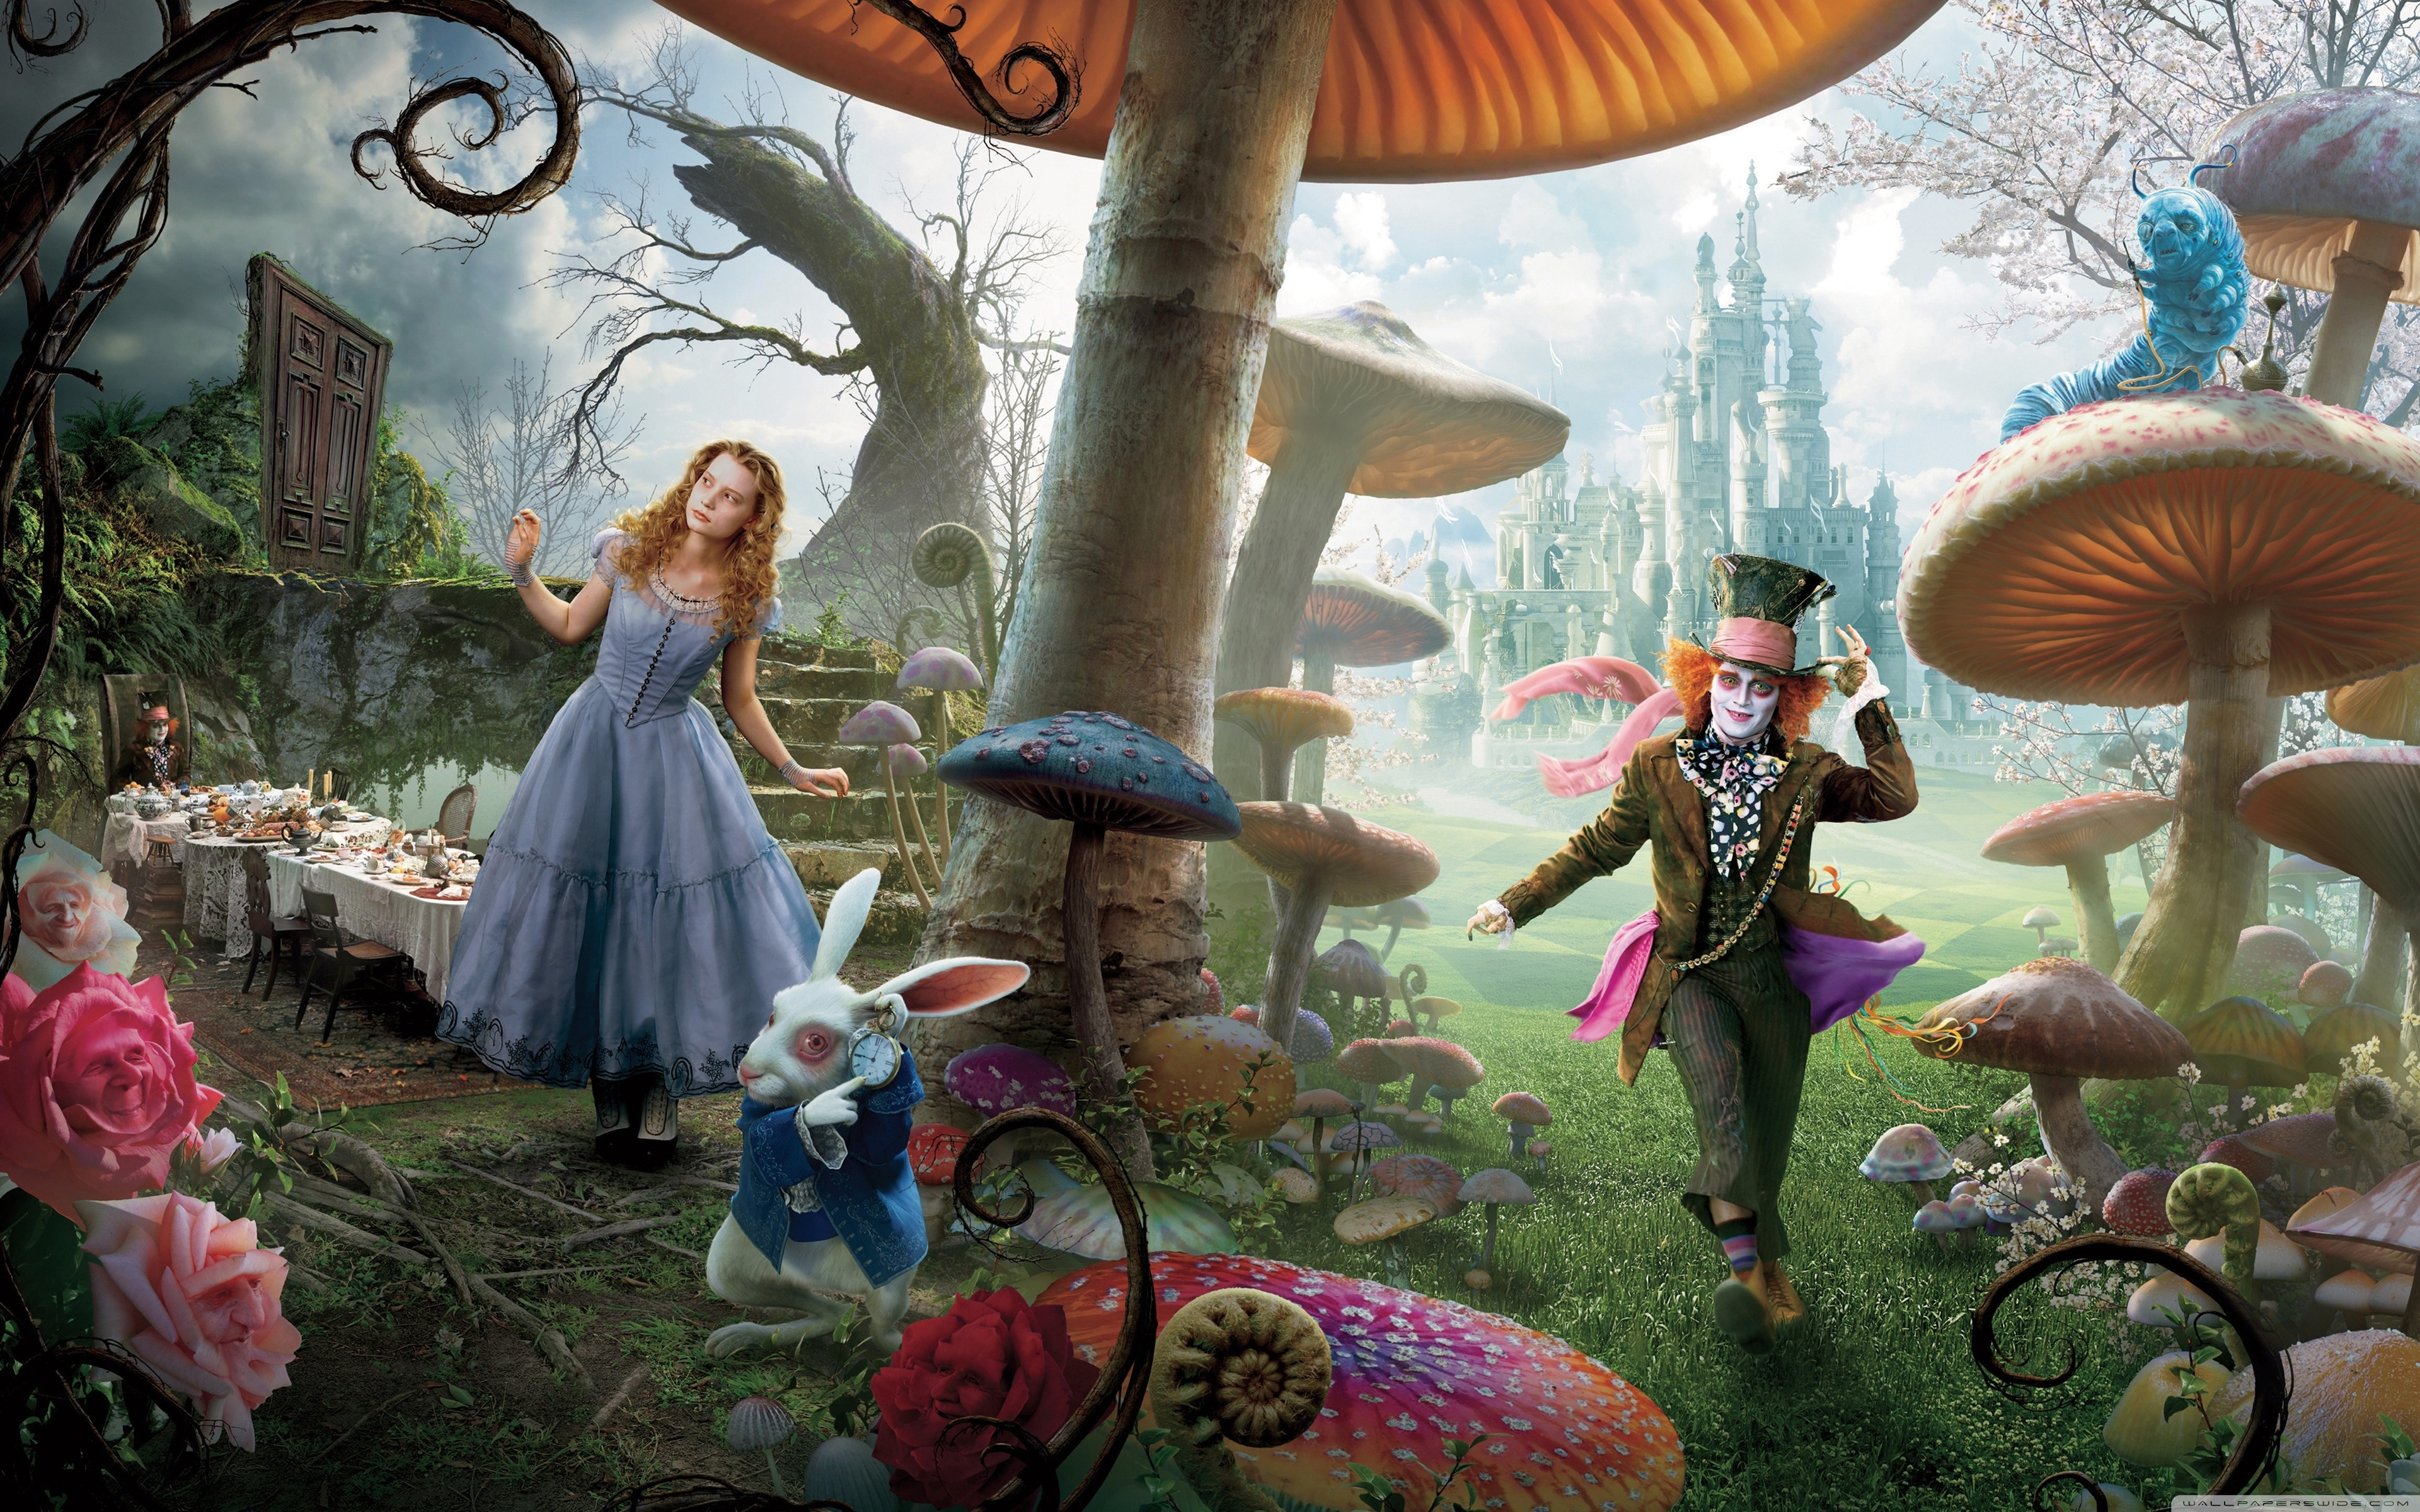 alice in wonderland movie ❤ 4k hd desktop wallpaper for 4k ultra hd